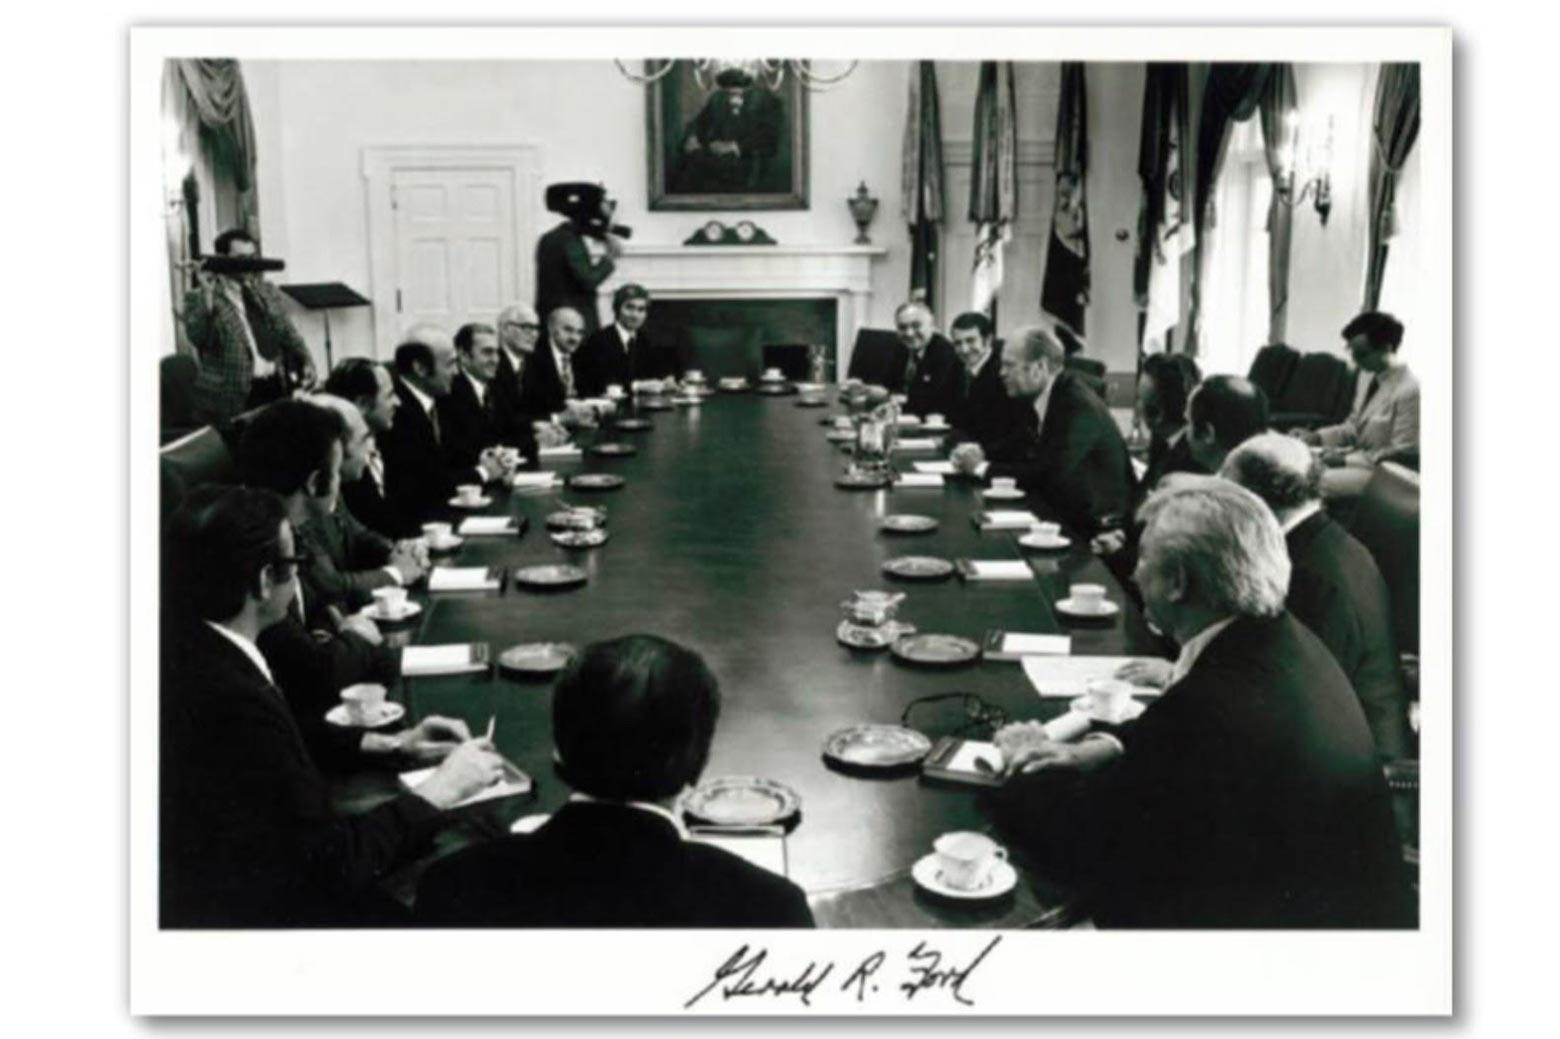 A photo of men gathered around President Gerald Ford